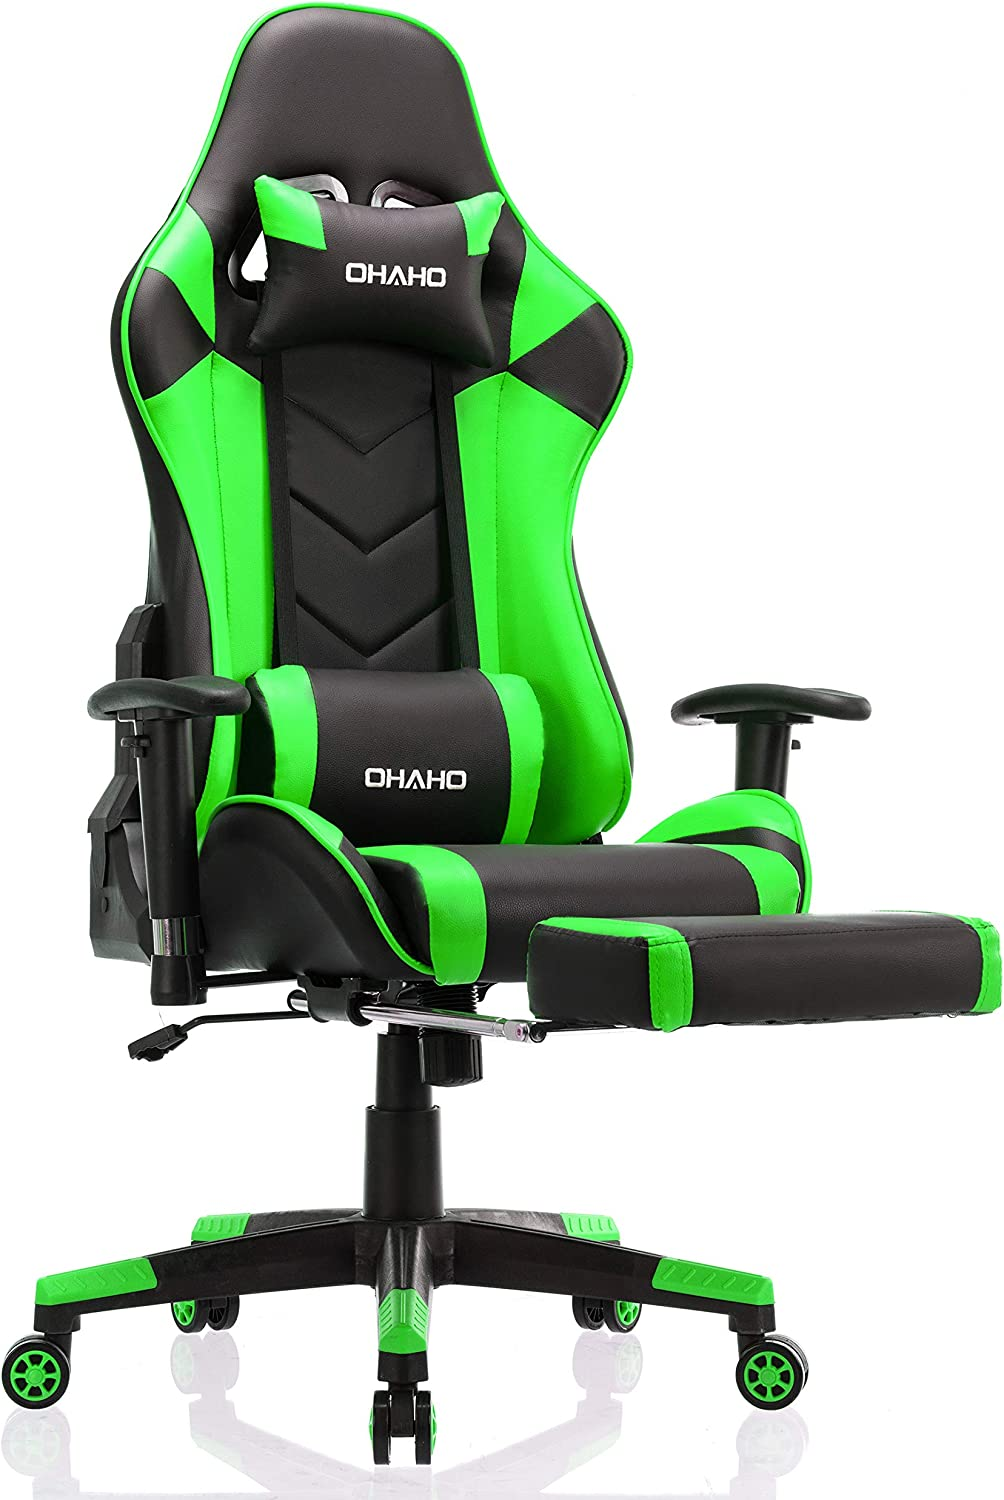 OHAHO In stock Gaming Chair Racing Massage Adjustable Style Max 48% OFF Office